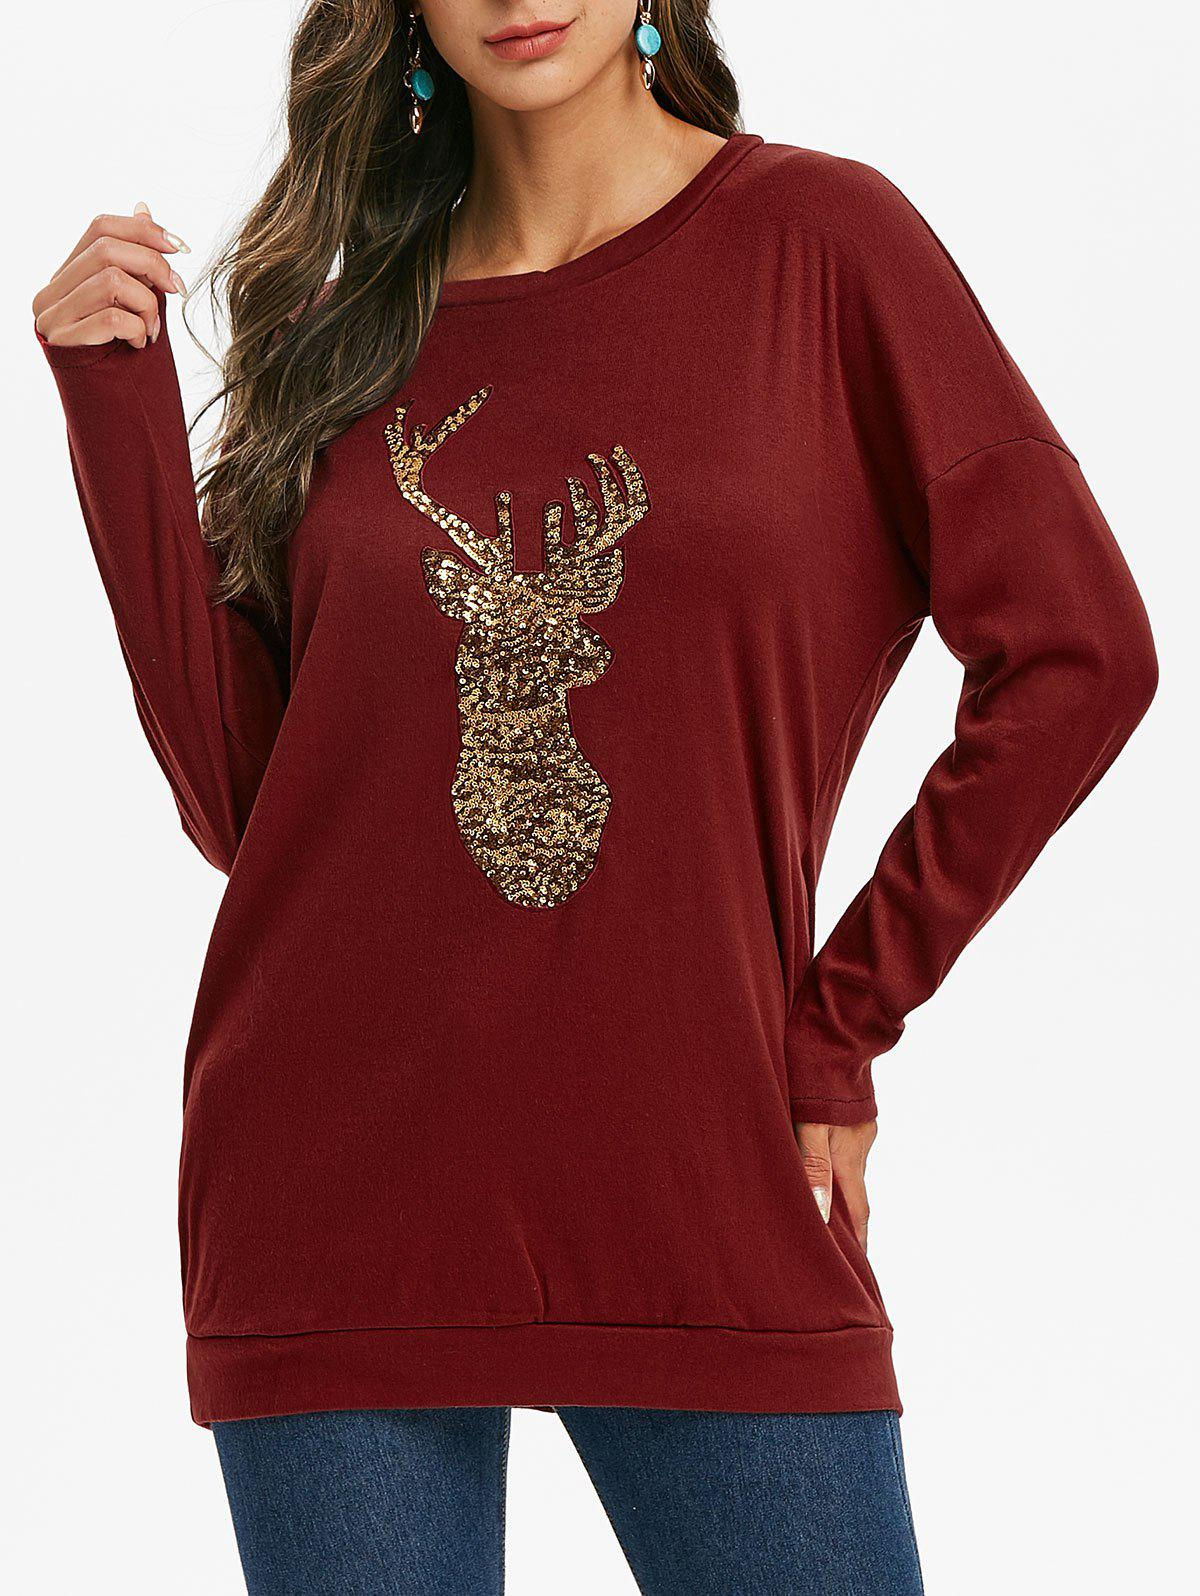 Sequined Reindeer Christmas Longline Sweatshirt - RED WINE S